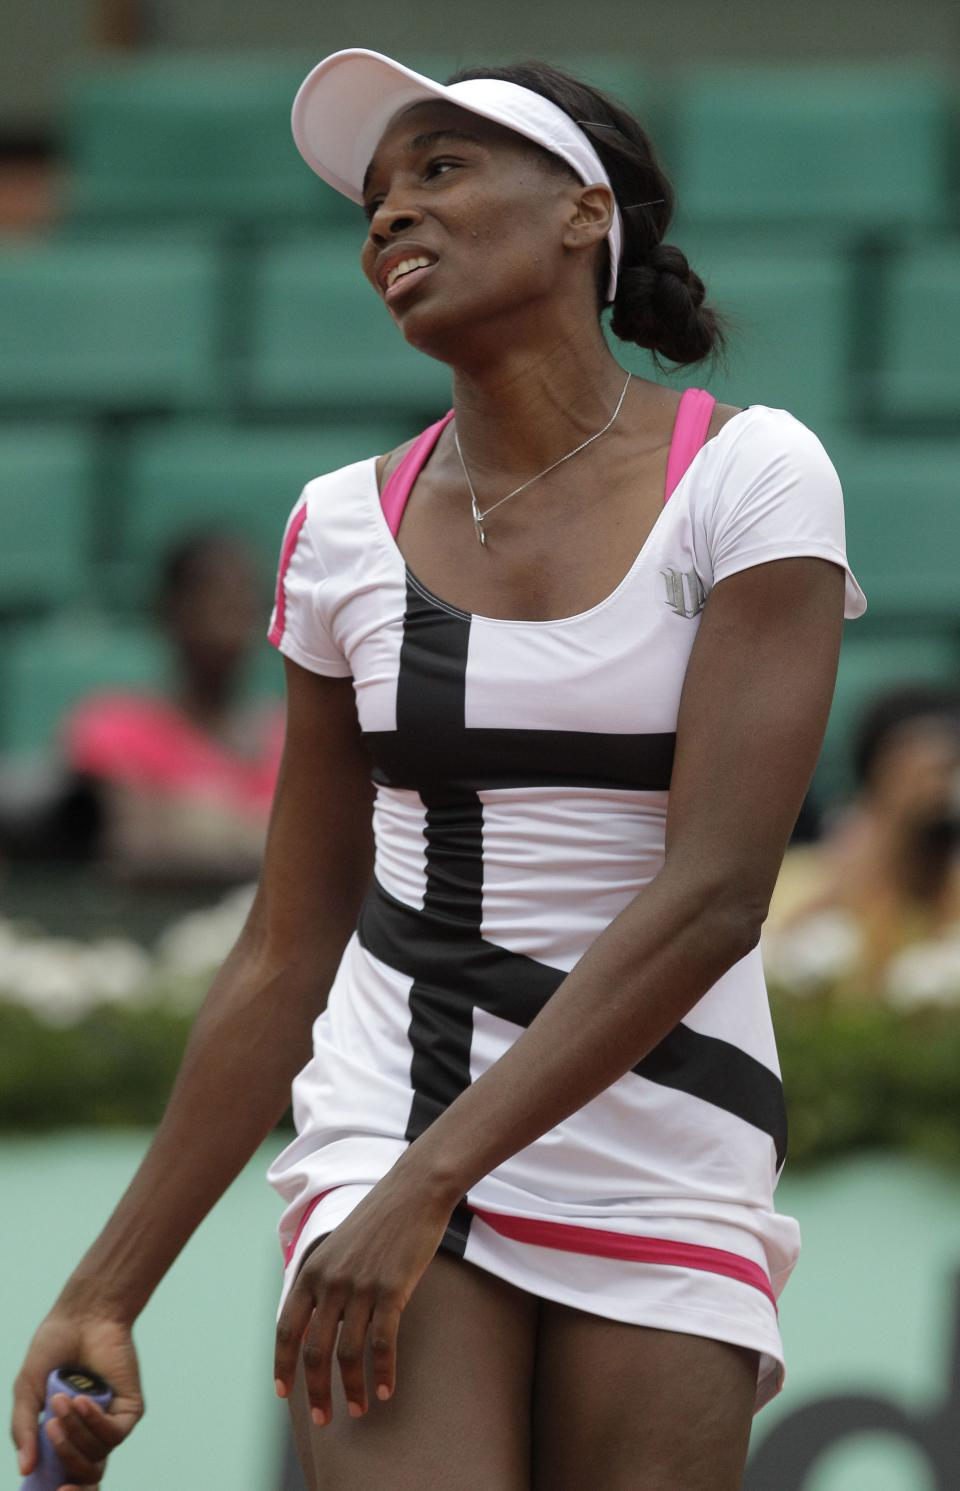 USA's Venus Williams reacts as she plays Poland's Agnieszka Radwanska  during their second round match in the French Open tennis tournament at the Roland Garros stadium in Paris, Wednesday, May 30, 2012.  (AP Photo/Michel Spingler)